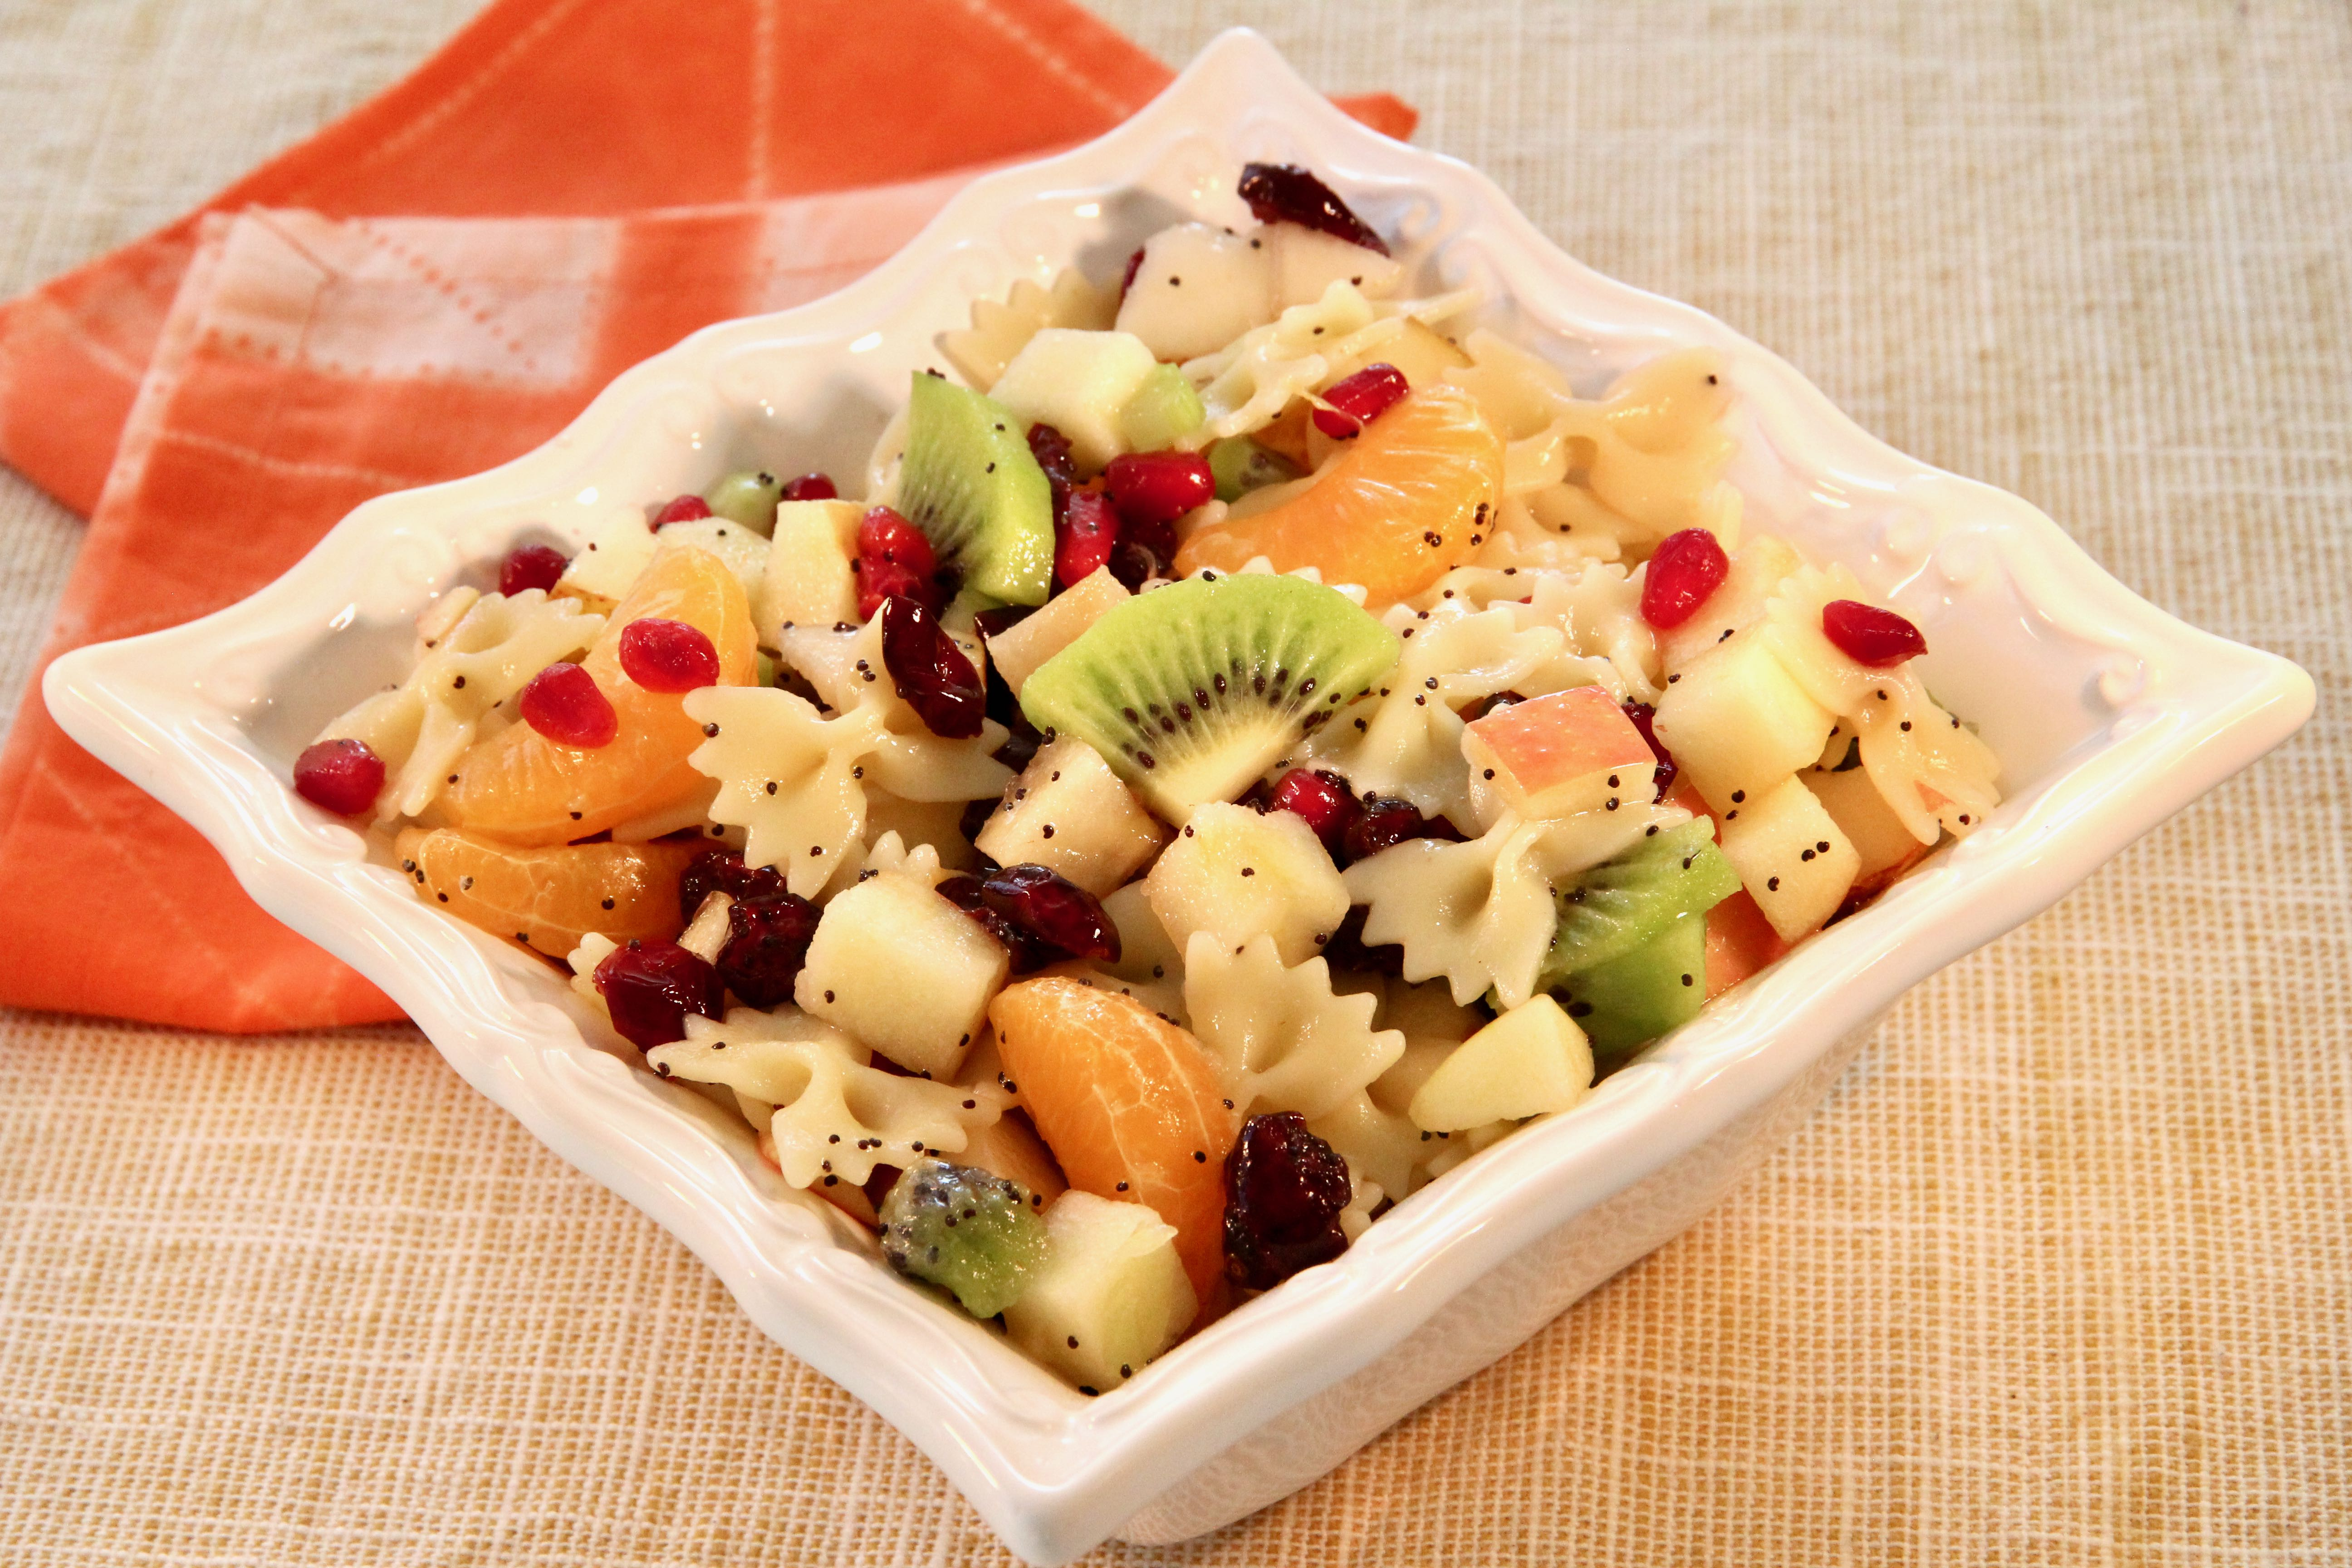 Winter Fruit and Pasta Salad